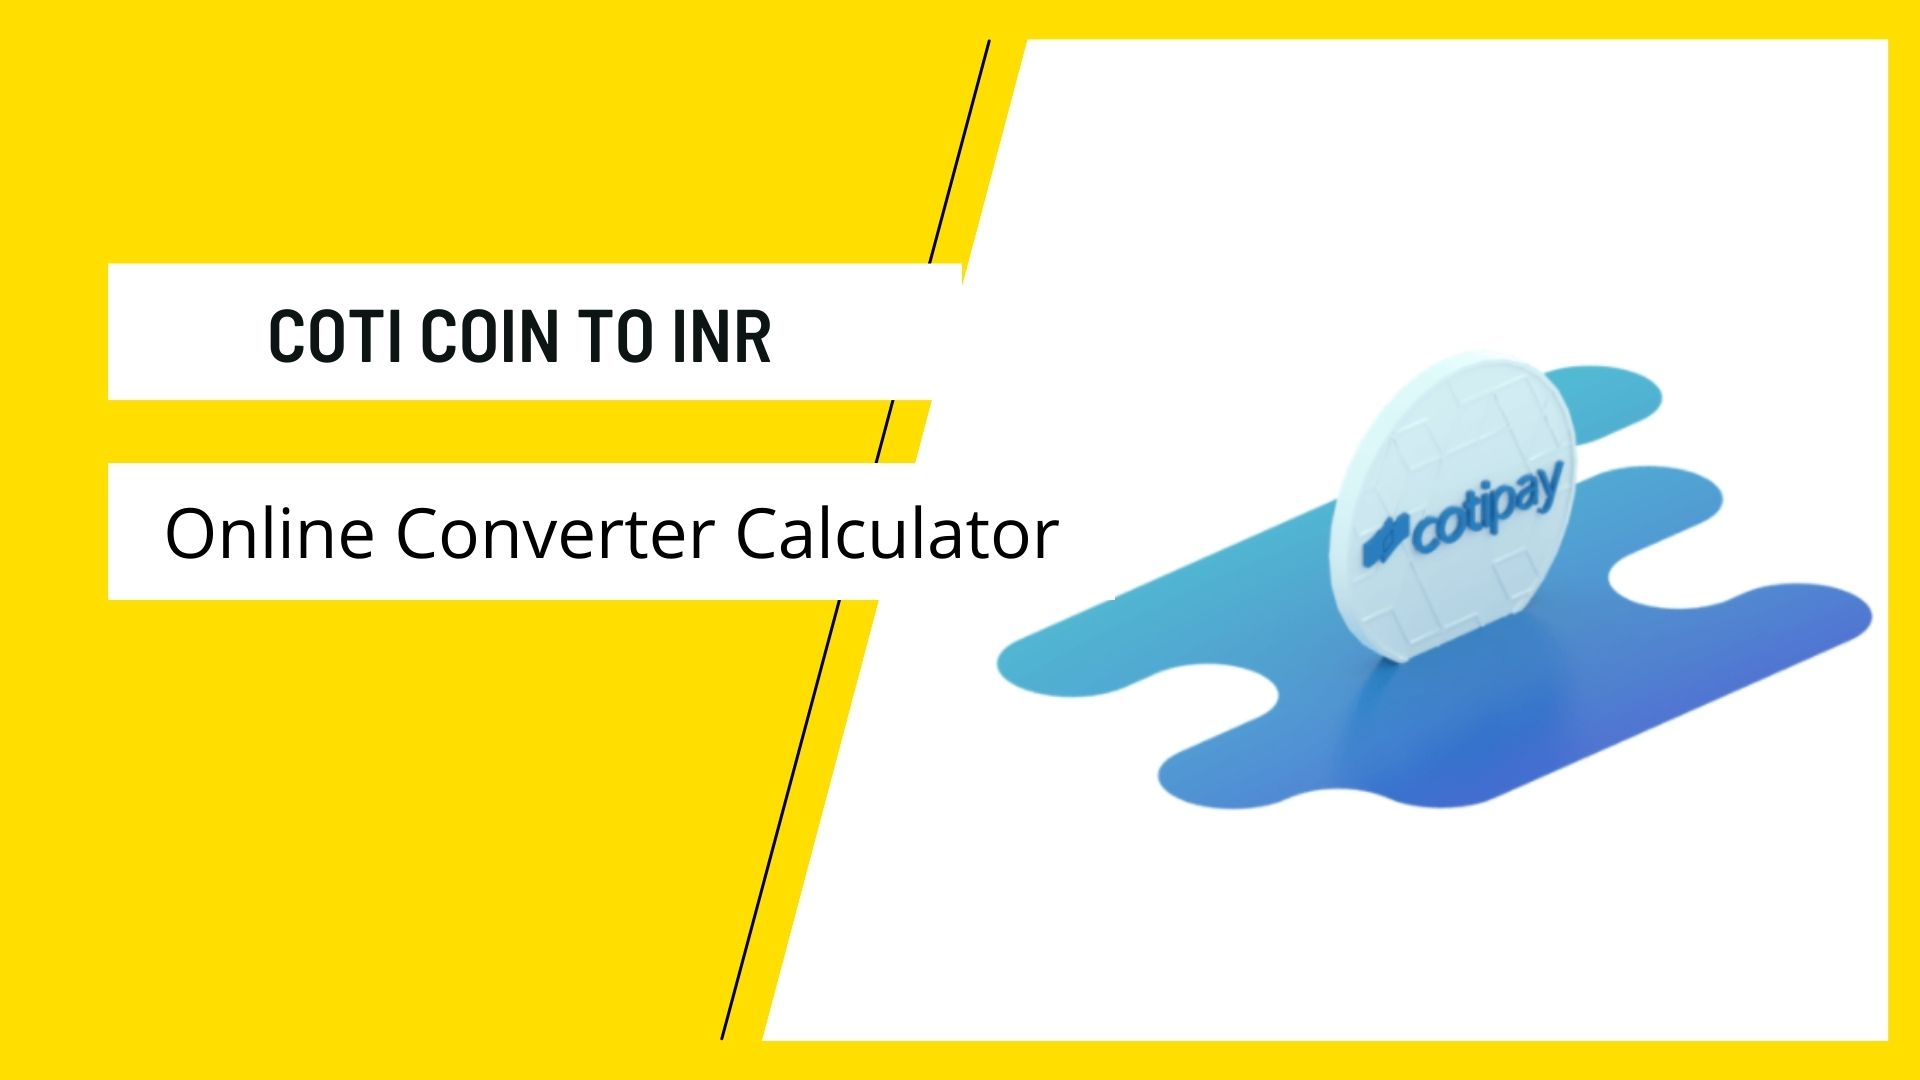 COTI COIN TO INR